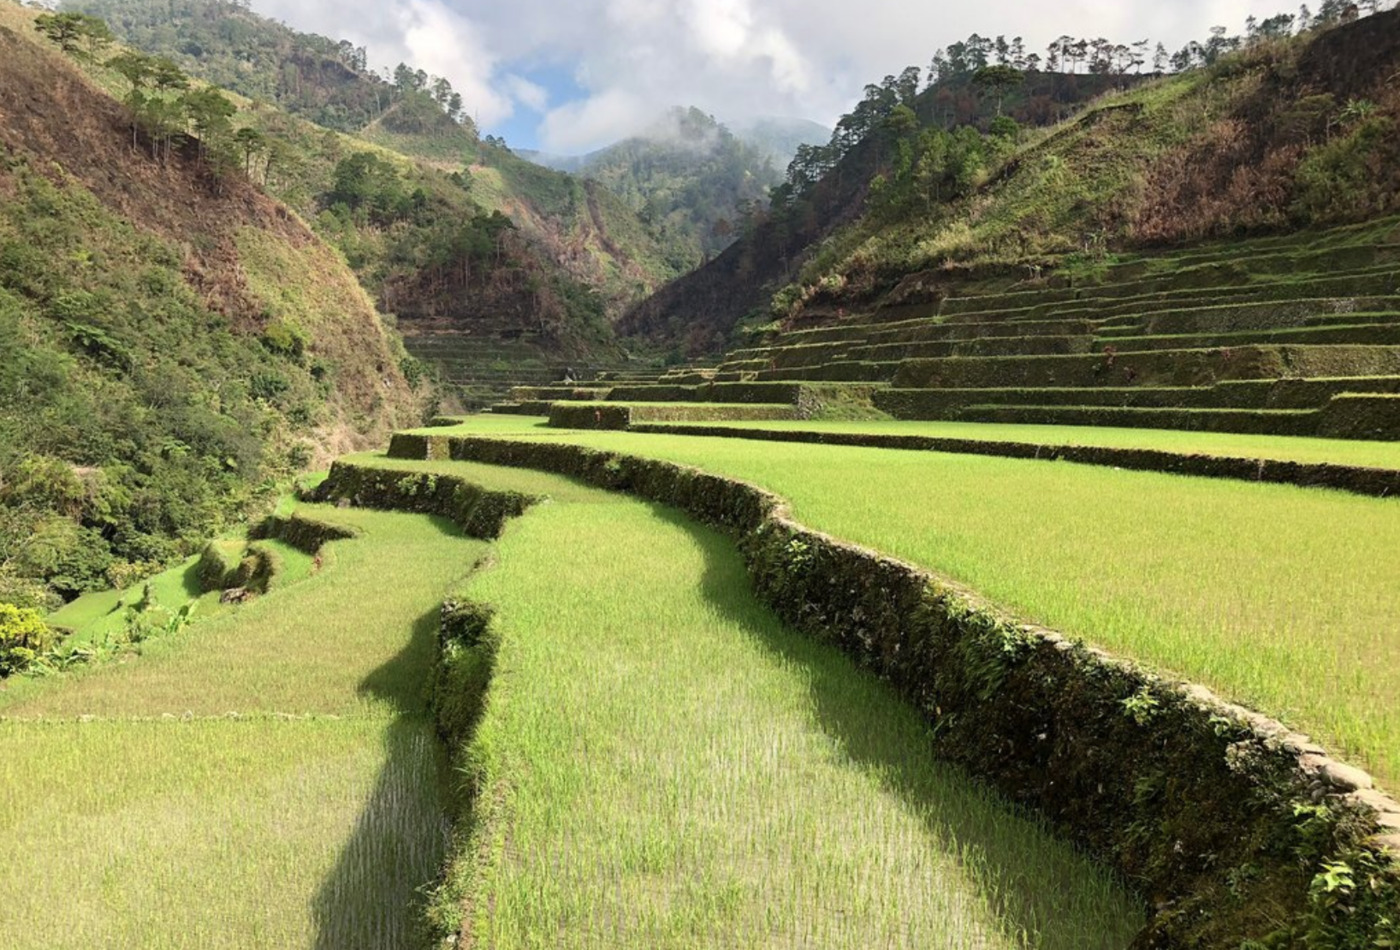 User submitted photo of Banaue Rice Terraces